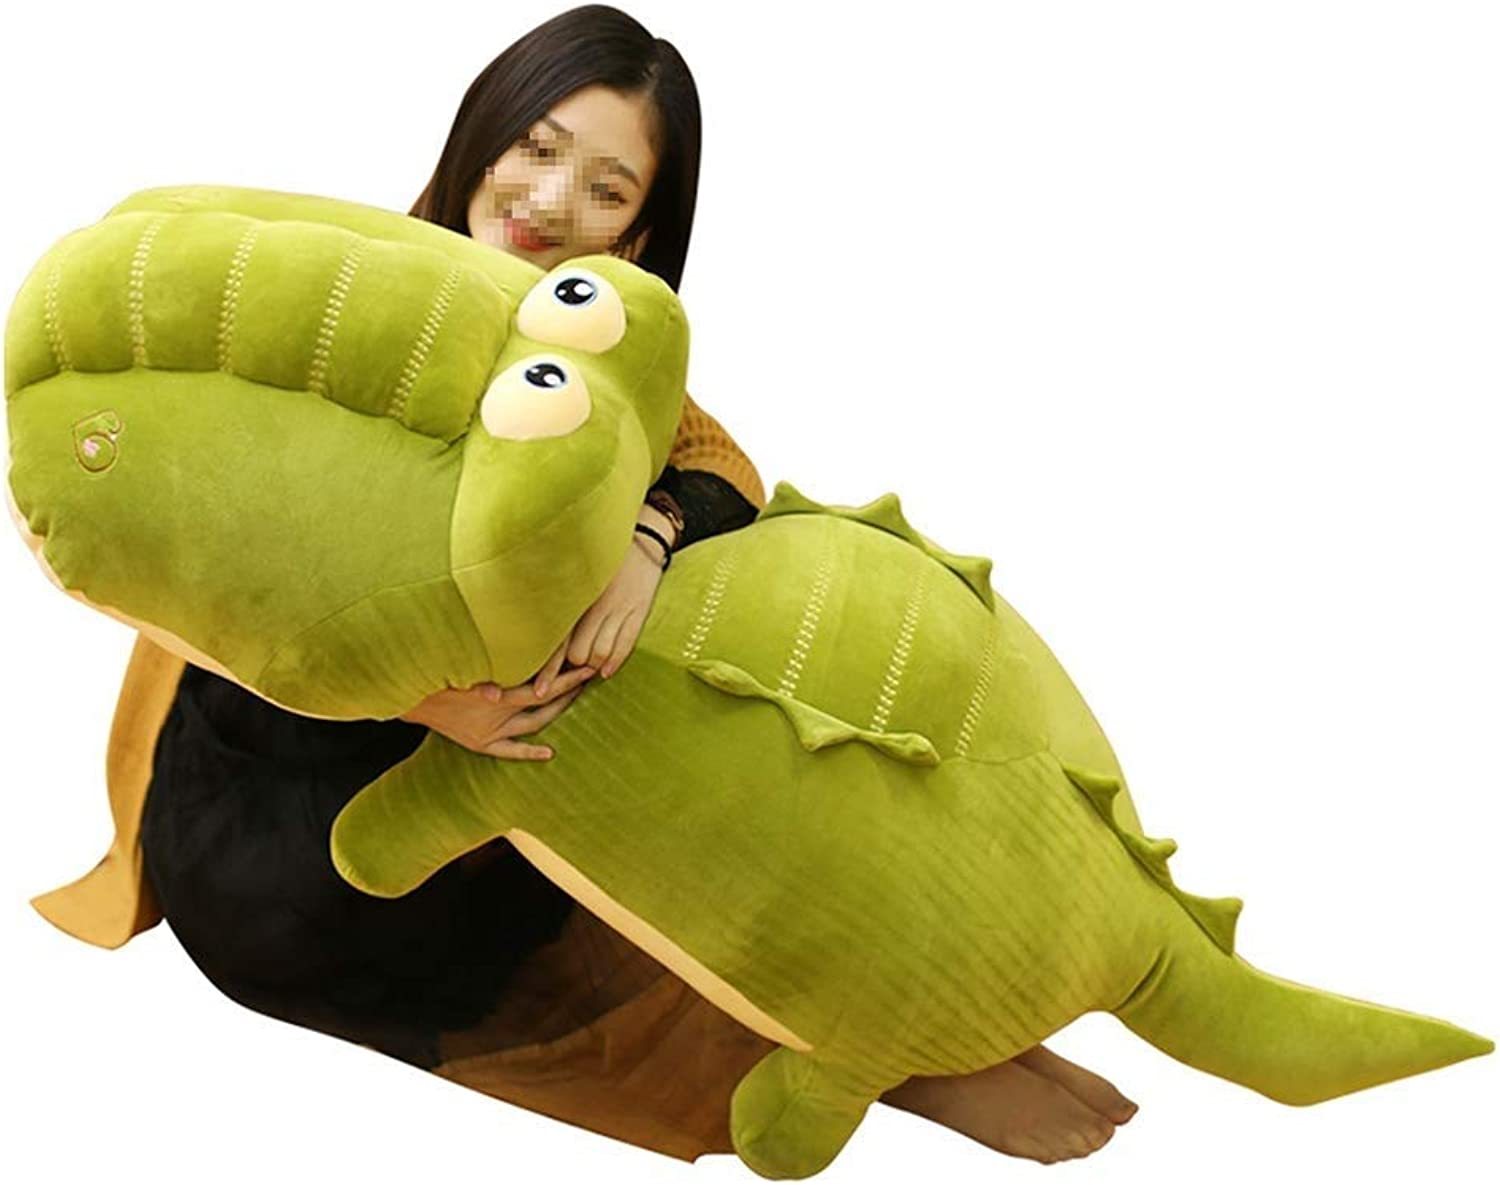 RUBB Dragon Toy yellow Stuffed Dinosaur Plush Toy, Plush Dinosaur Stuffed Animal, Dinosaur Toy for Baby Girl Boy Kids Birthday Gifts (Size   90cm)